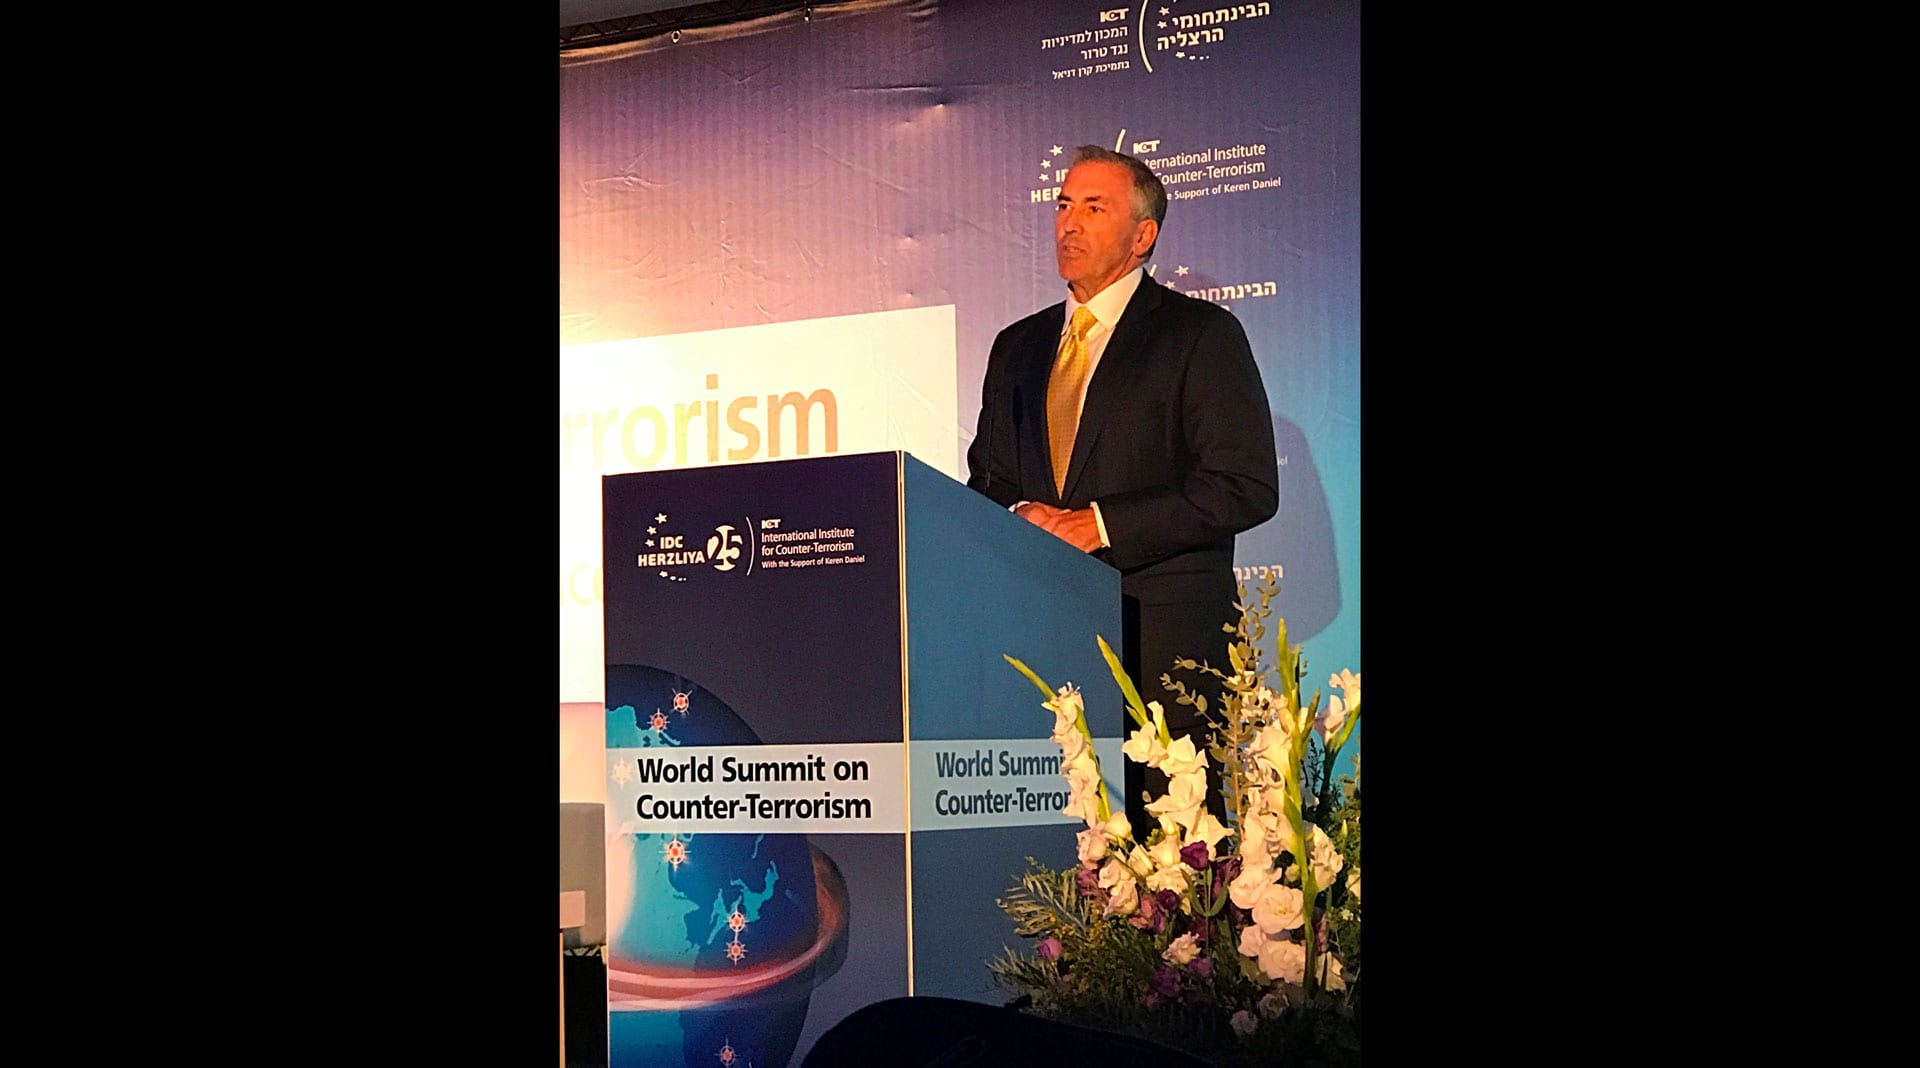 Michael Balboni Speaks at 2018 World Summit on Counter-Terrorism in Israel